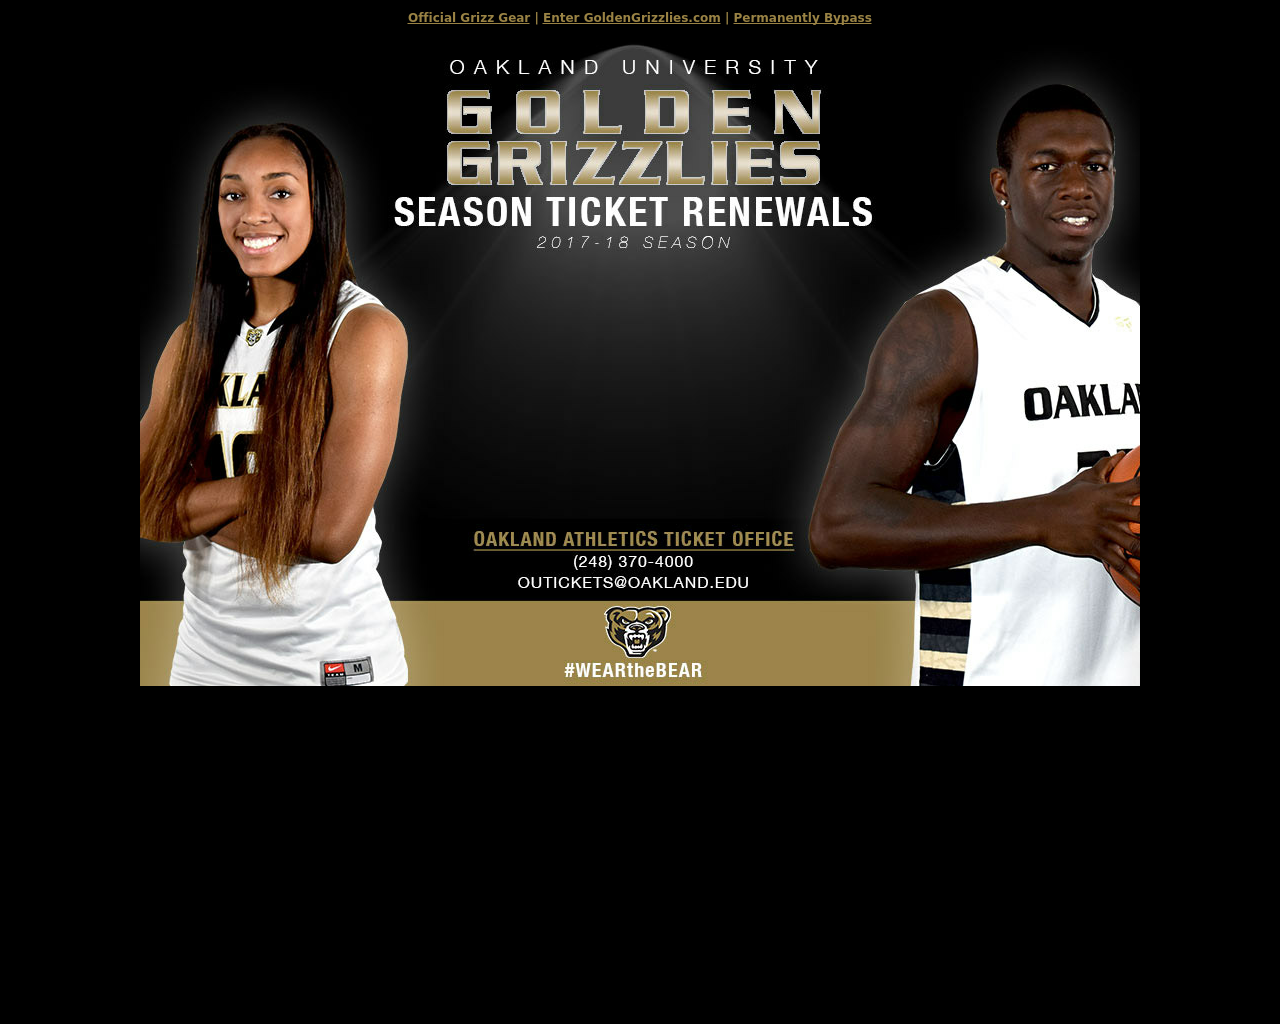 Golden-Grizzlies-Advertising-Reviews-Pricing